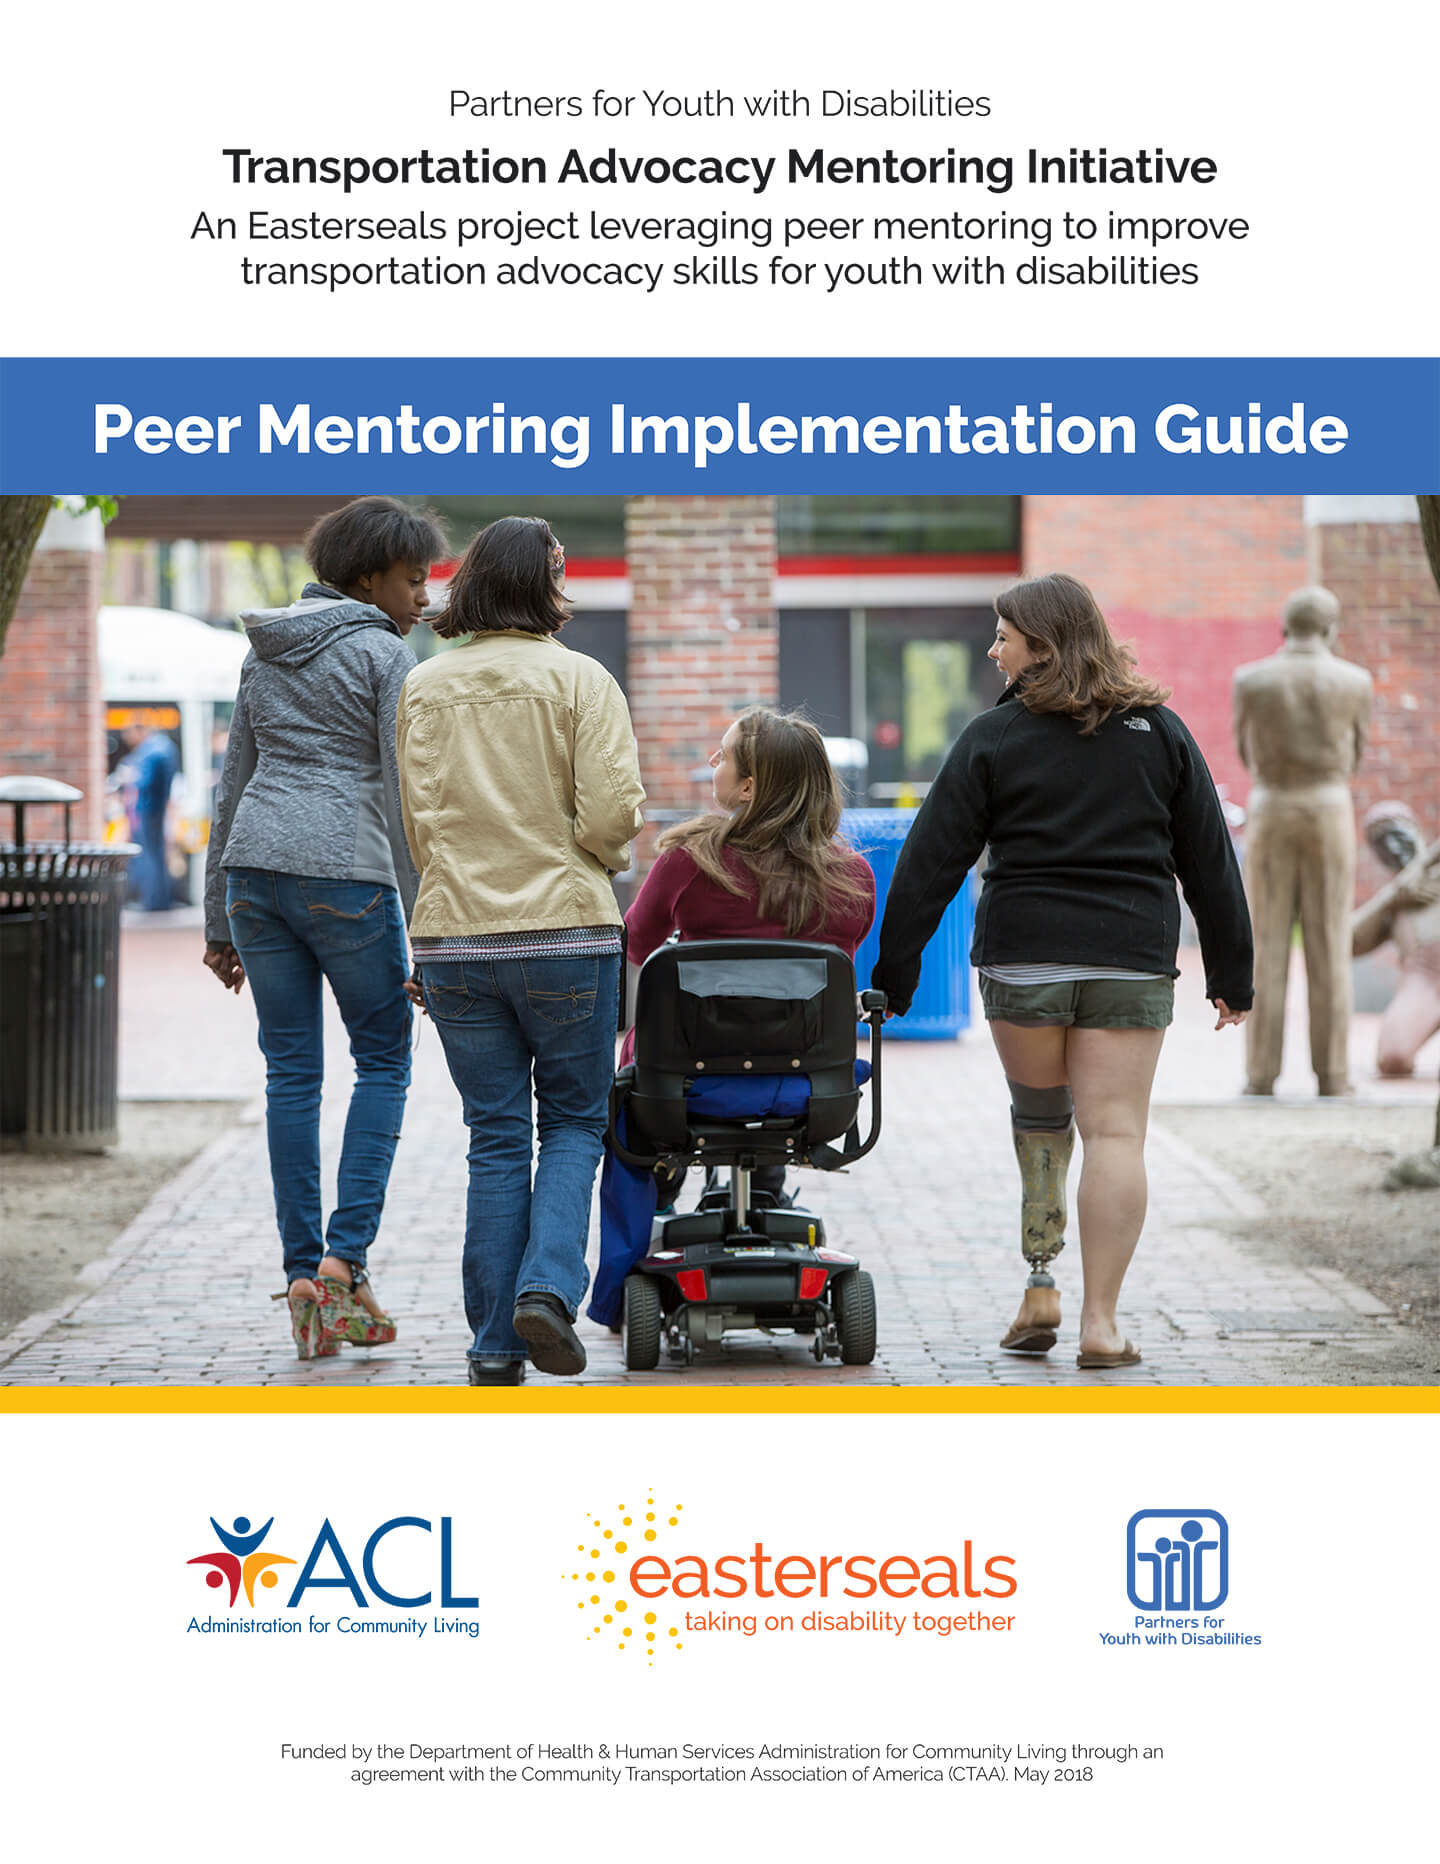 Transportation Advocacy Mentoring Initiative Implementation Guide